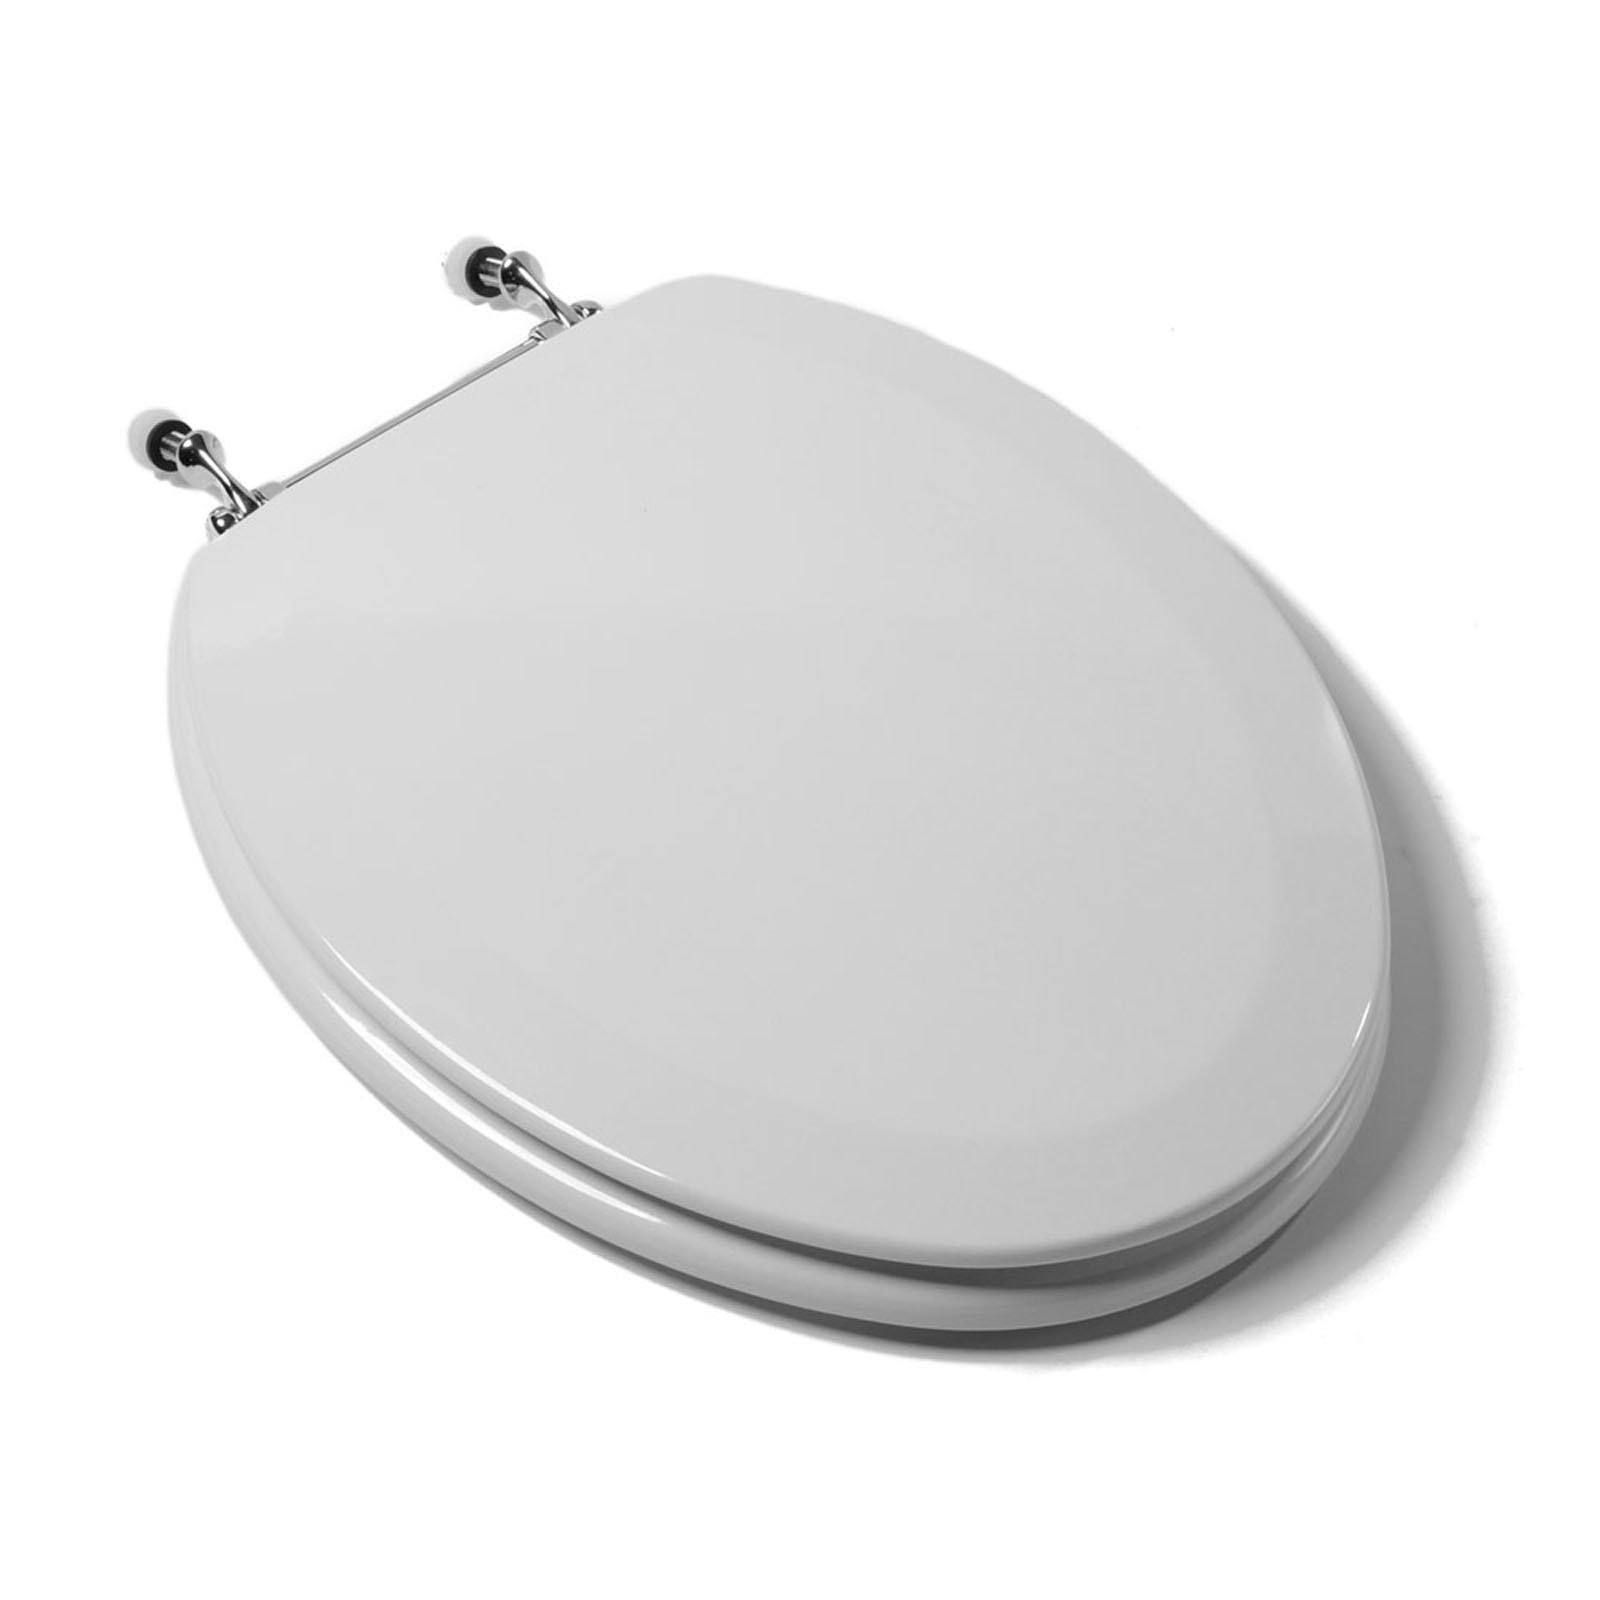 Awe Inspiring Deluxe Molded Wood Toilet Seat White Chrome Hinge Elongated Closed Front With Cover Machost Co Dining Chair Design Ideas Machostcouk